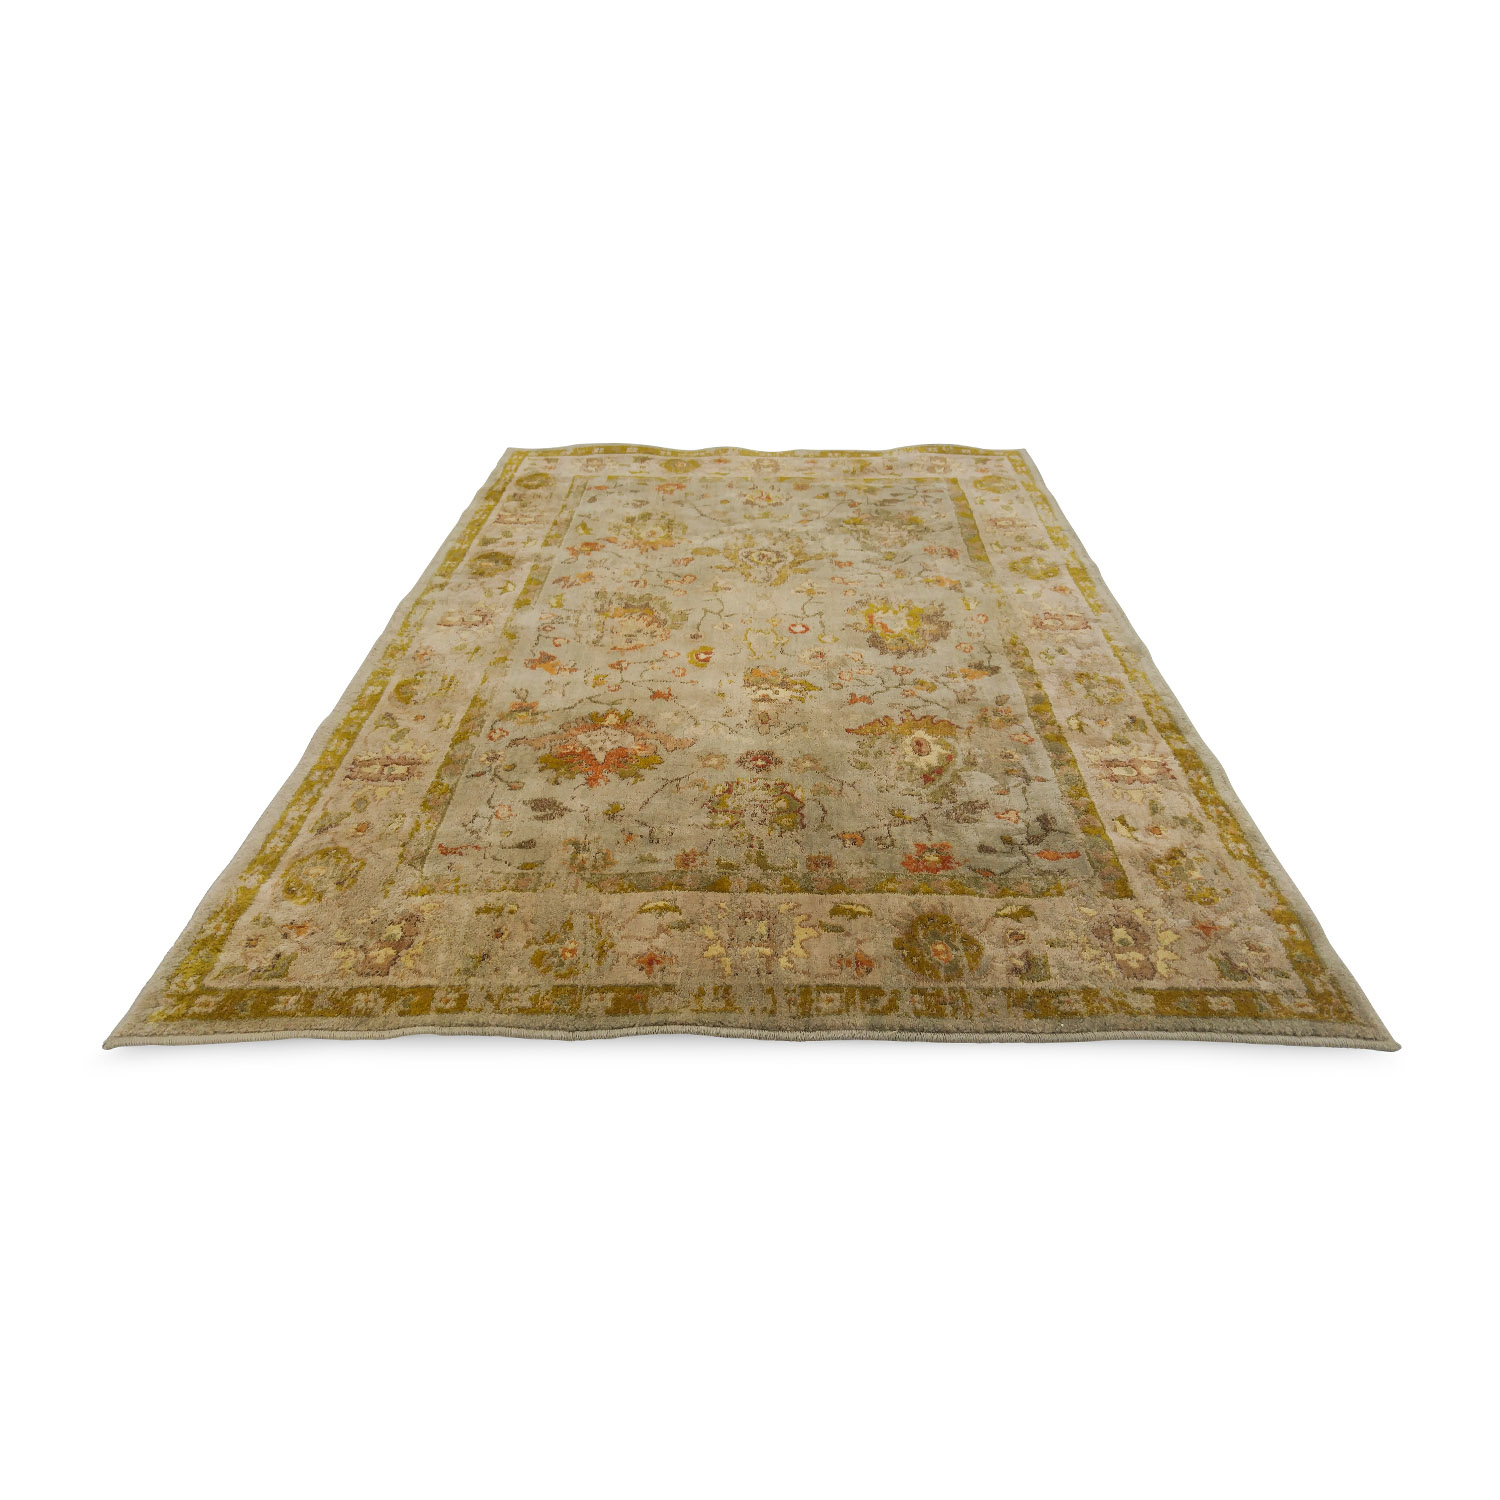 50 off home decorators barletta area rug decor for Home decorators rugs sale